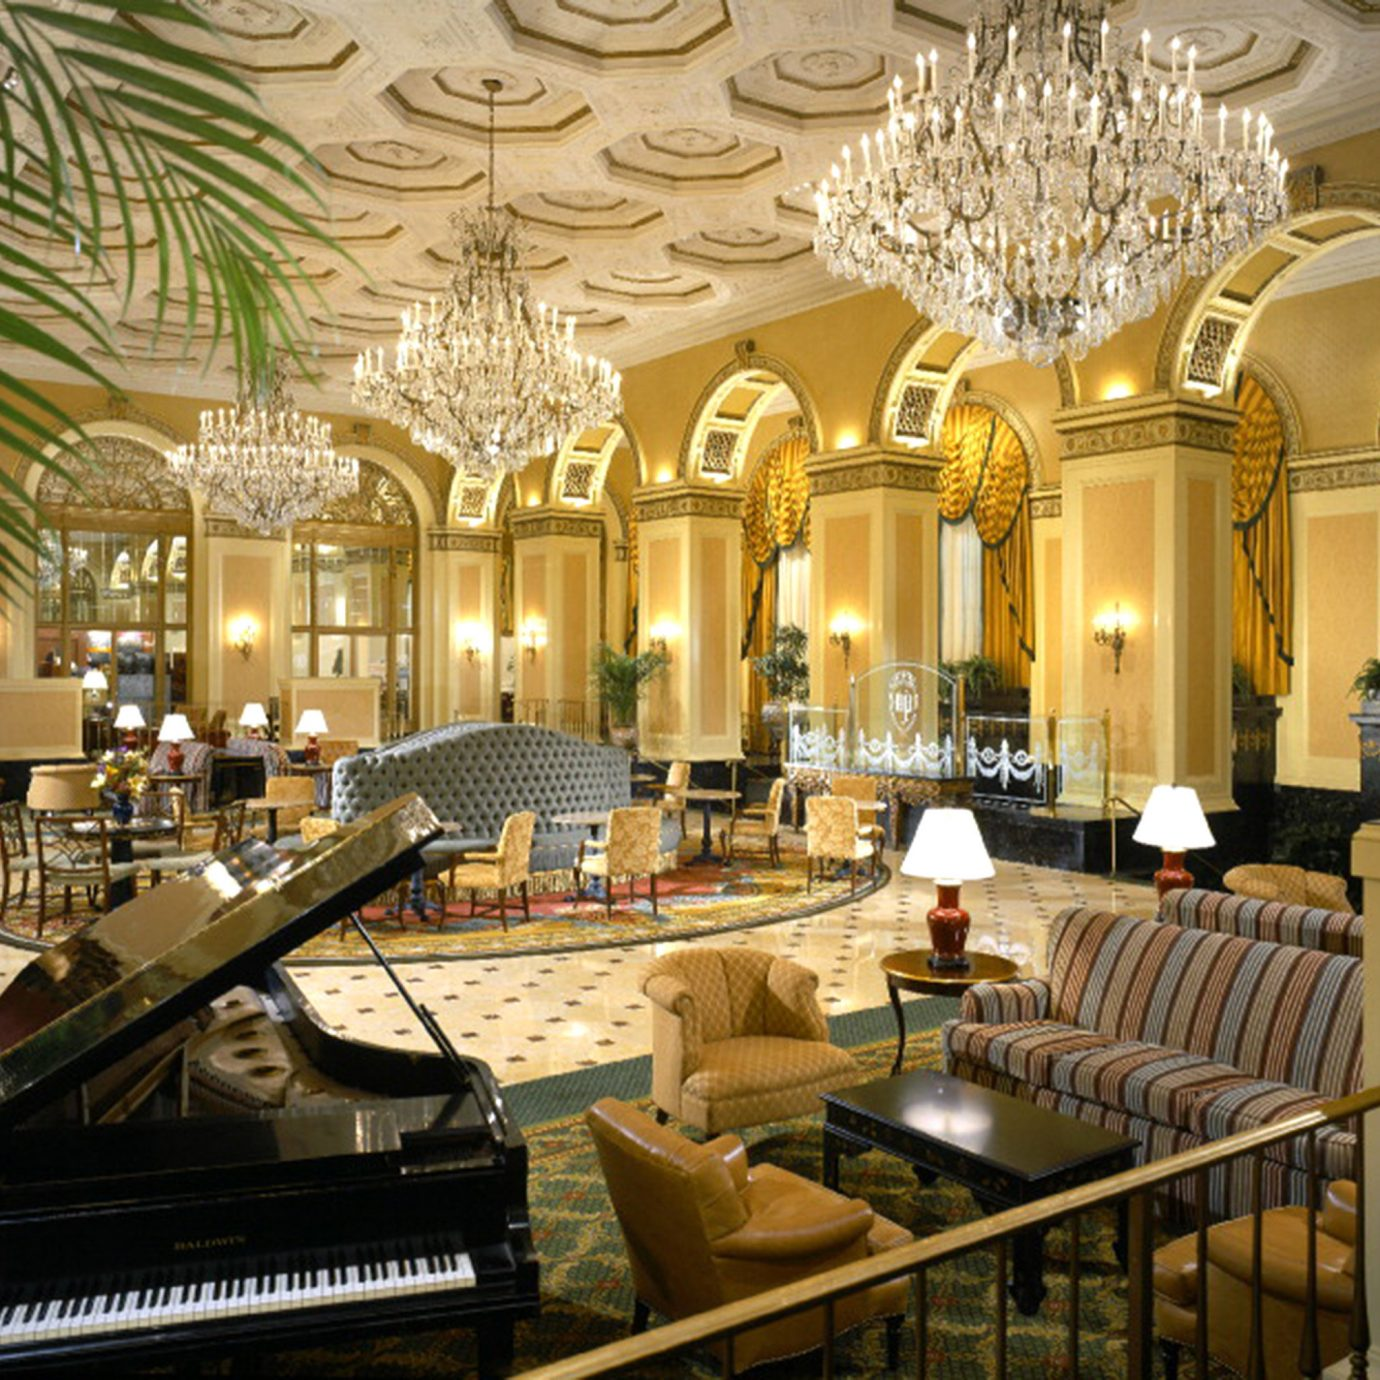 Elegant Historic Lobby Lounge Luxury palace function hall mansion ballroom convention center